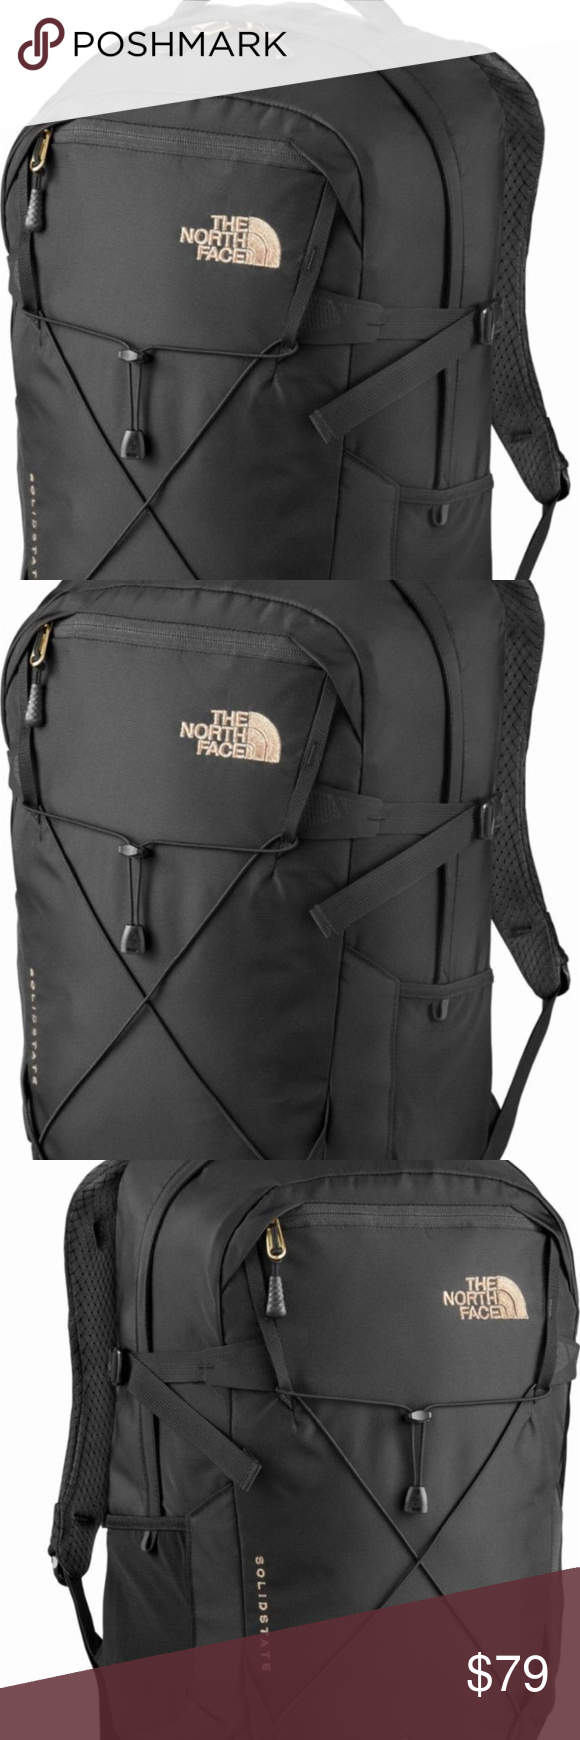 80f562494 The North Face - Women's Solid State Backpack The North Face ...